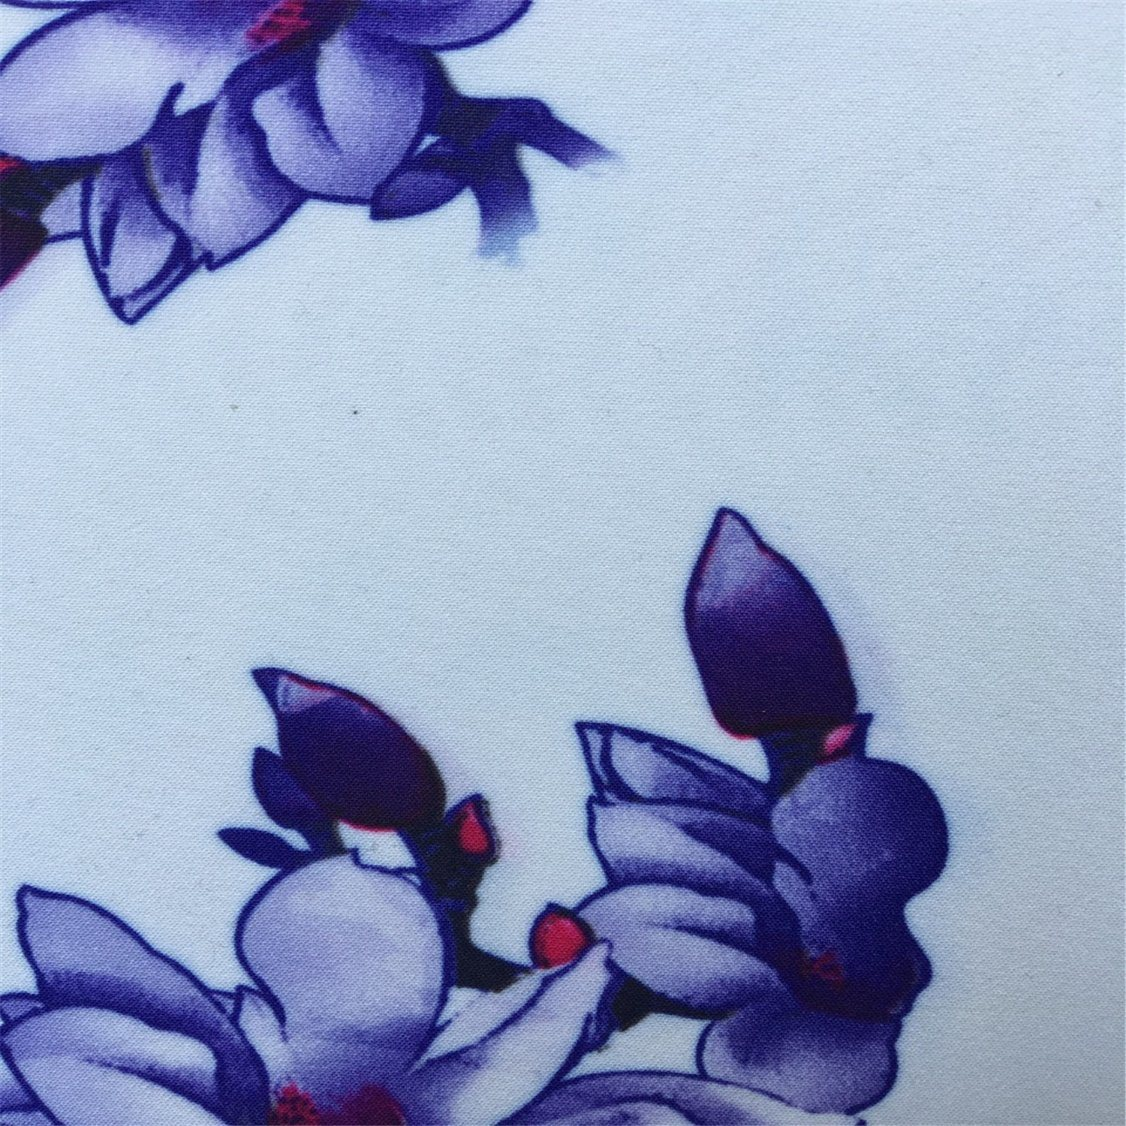 Polyester 4-Way Stretch Fabric with Digital Printing, Women′s Dress, Clothing, Textile Fabric, Garment Fabric